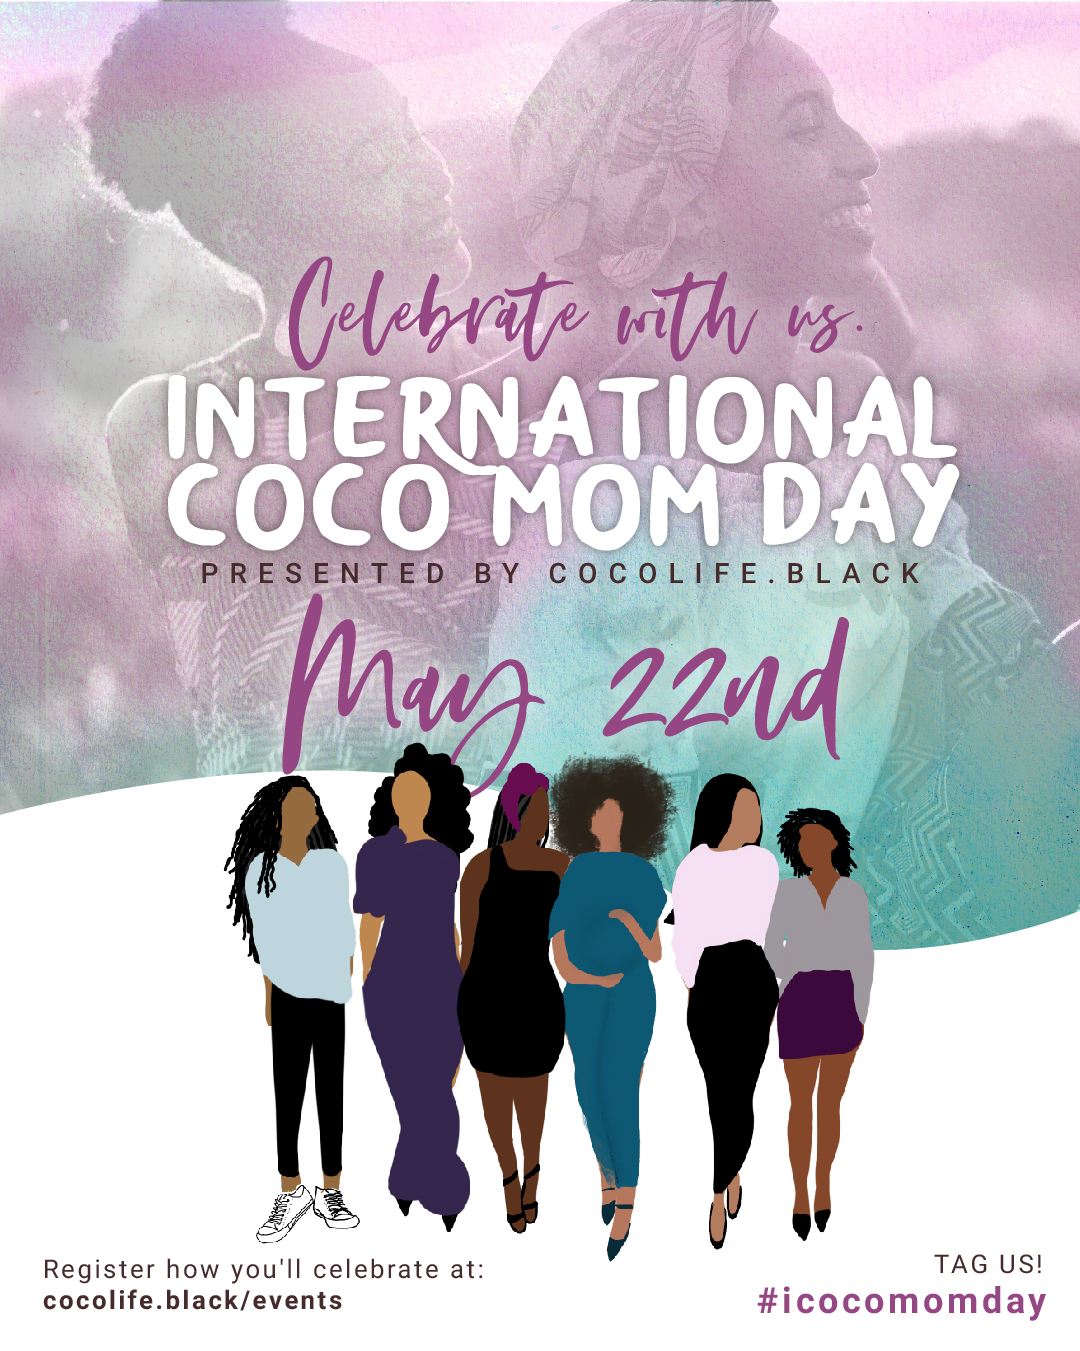 Cocolife.black Declares May 22 As International Coco Mom Day